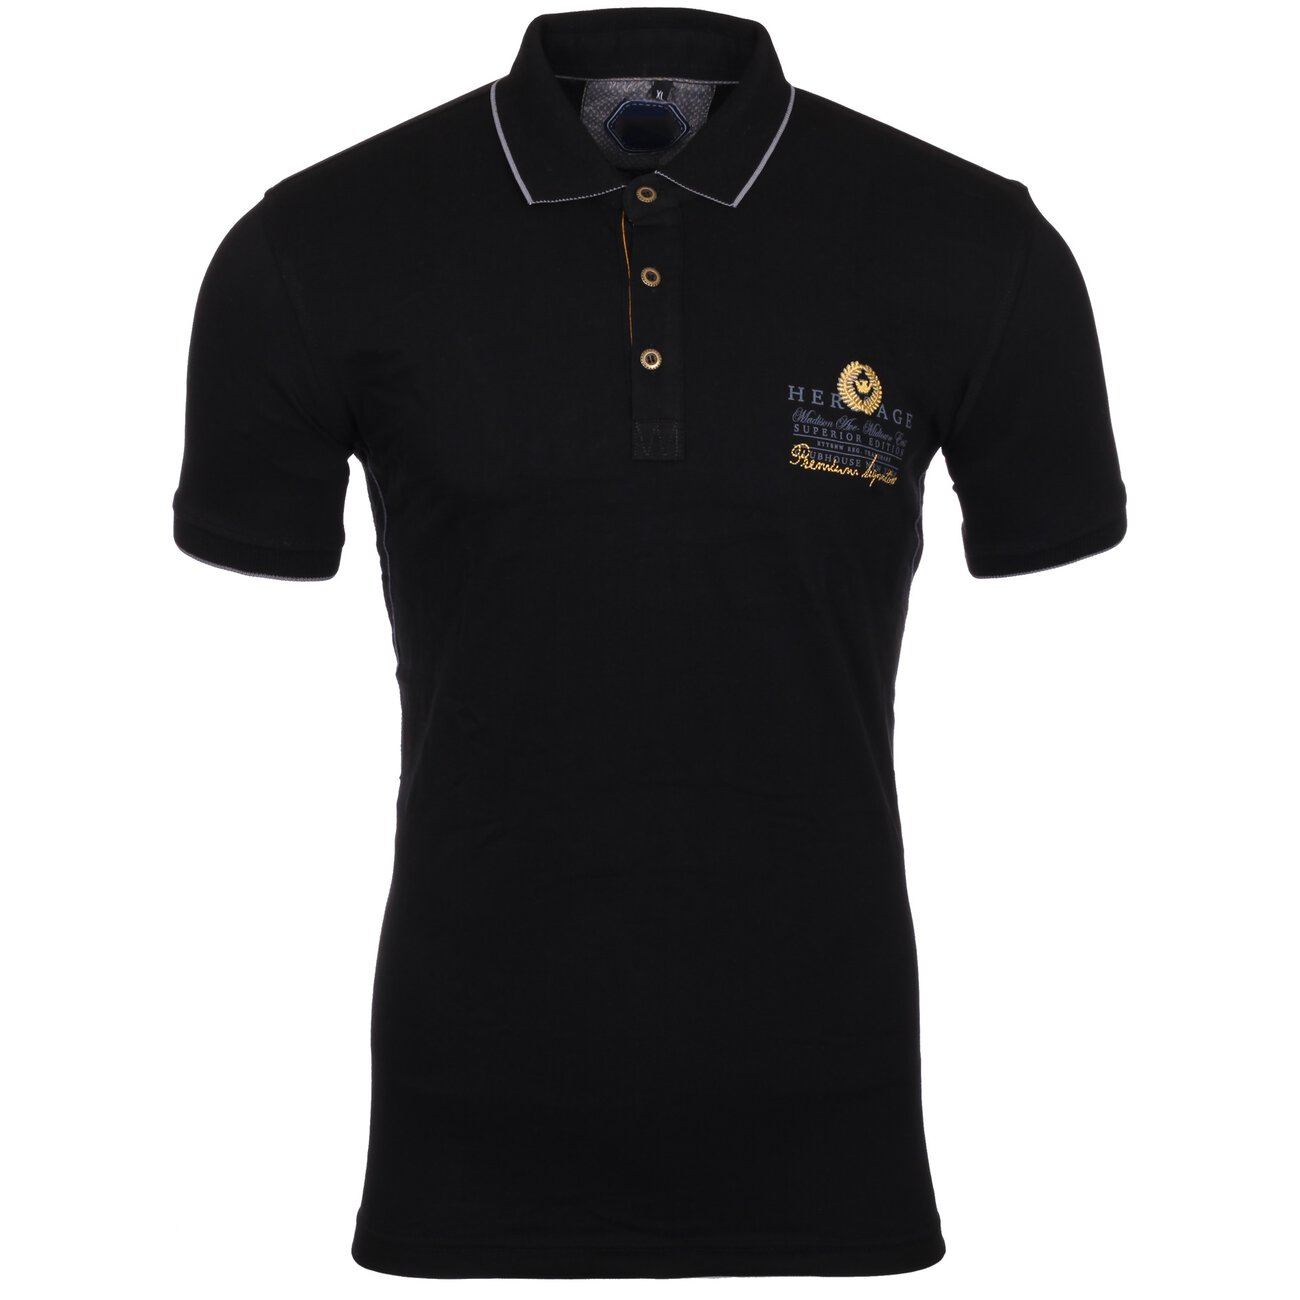 reslad polo shirt herren slim fit designer polo hemd kurzarm shirt rs. Black Bedroom Furniture Sets. Home Design Ideas